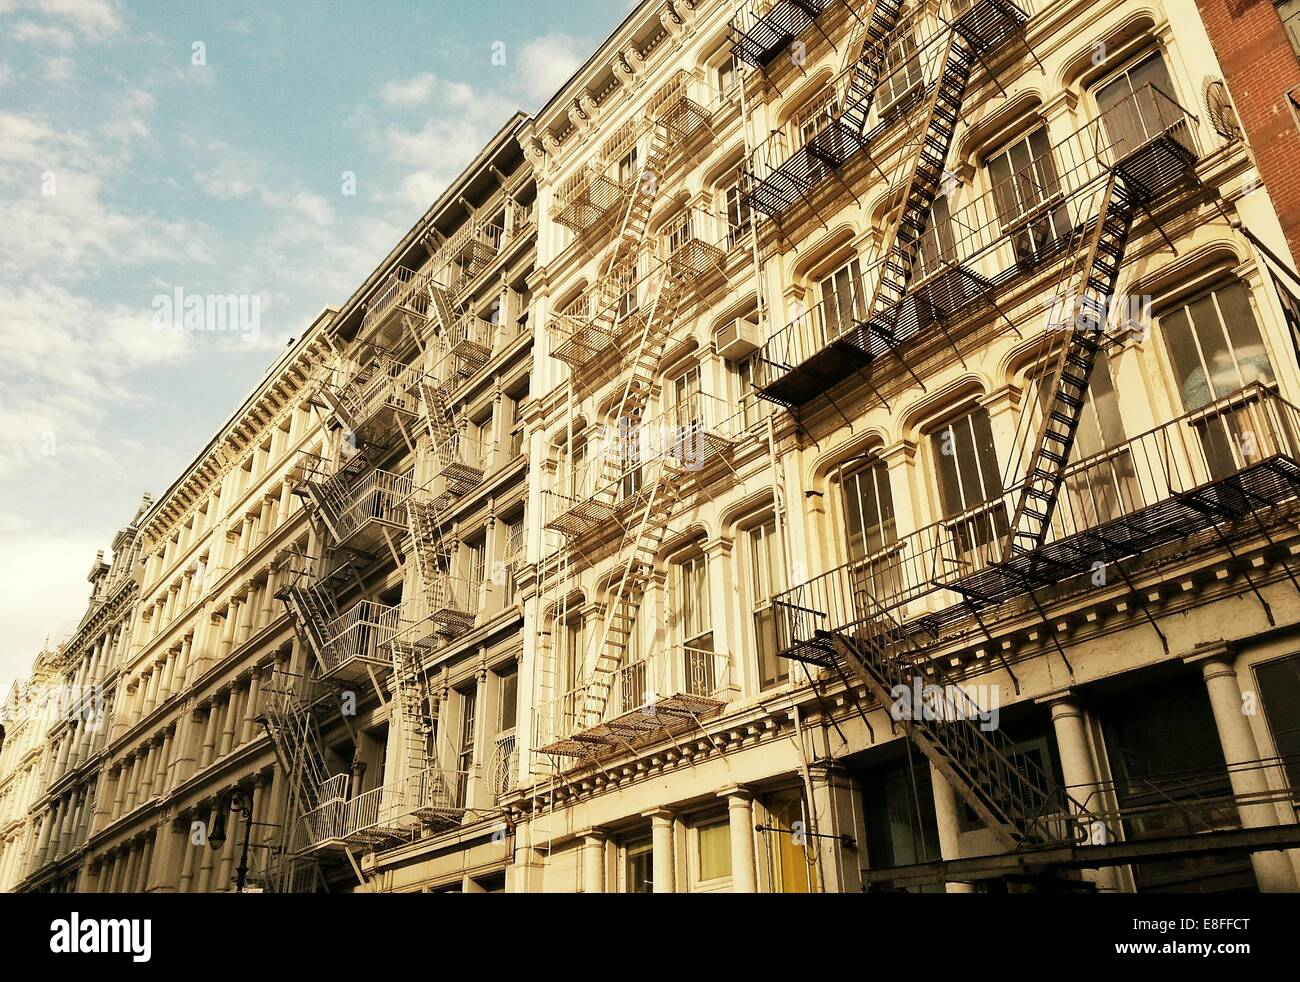 USA, New York State, New York City, Fire escapes on building - Stock Image